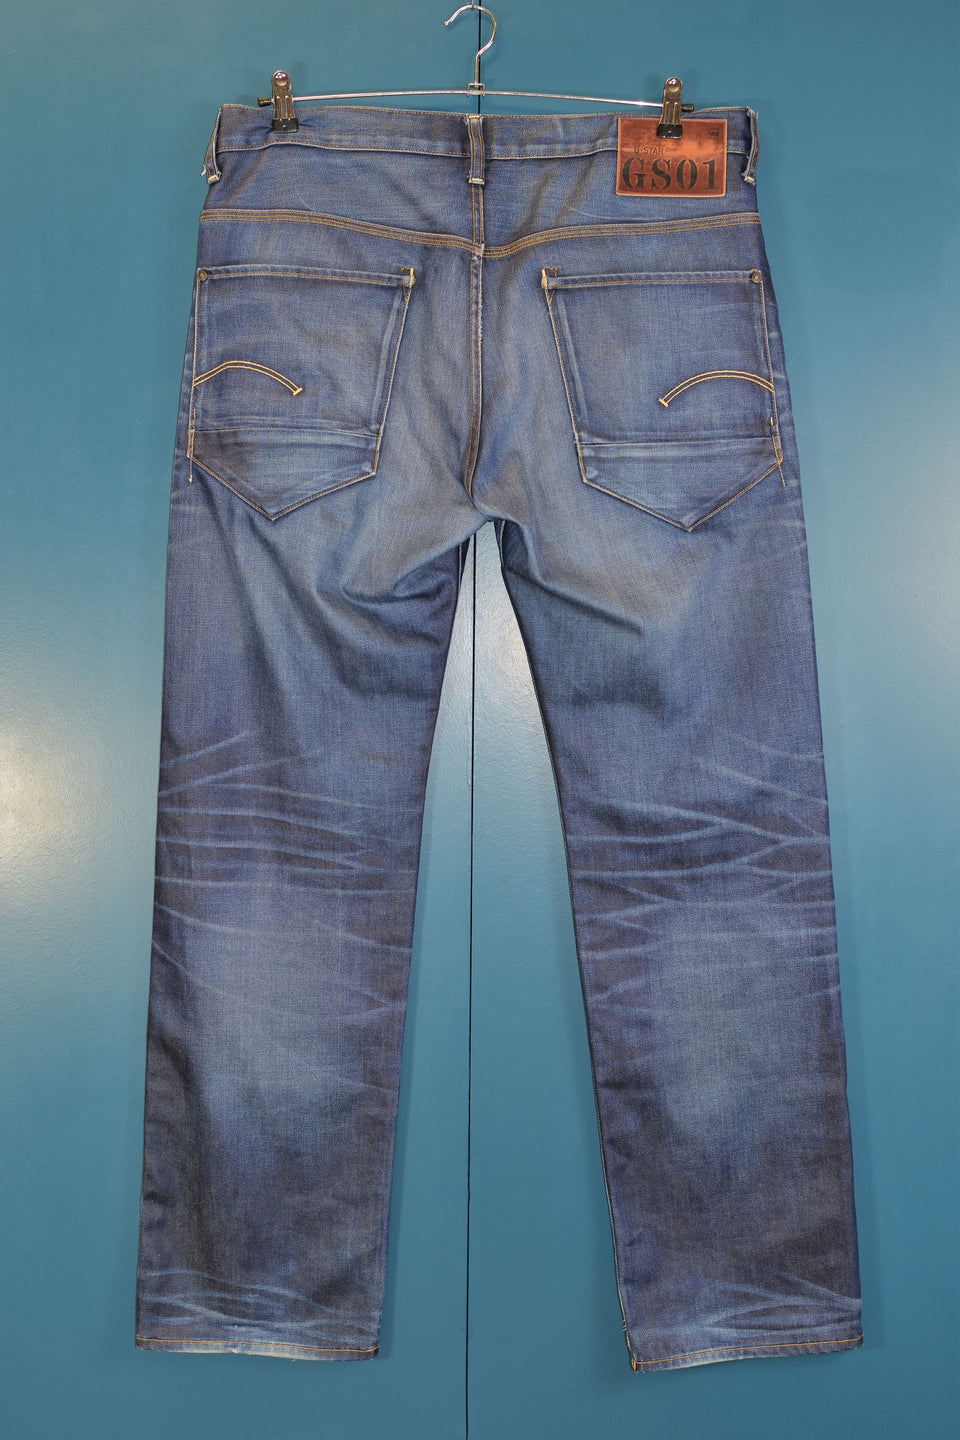 G-STAR RAW Men's Medium Blue Jeans, Size 38 x 34. Pre-loved.